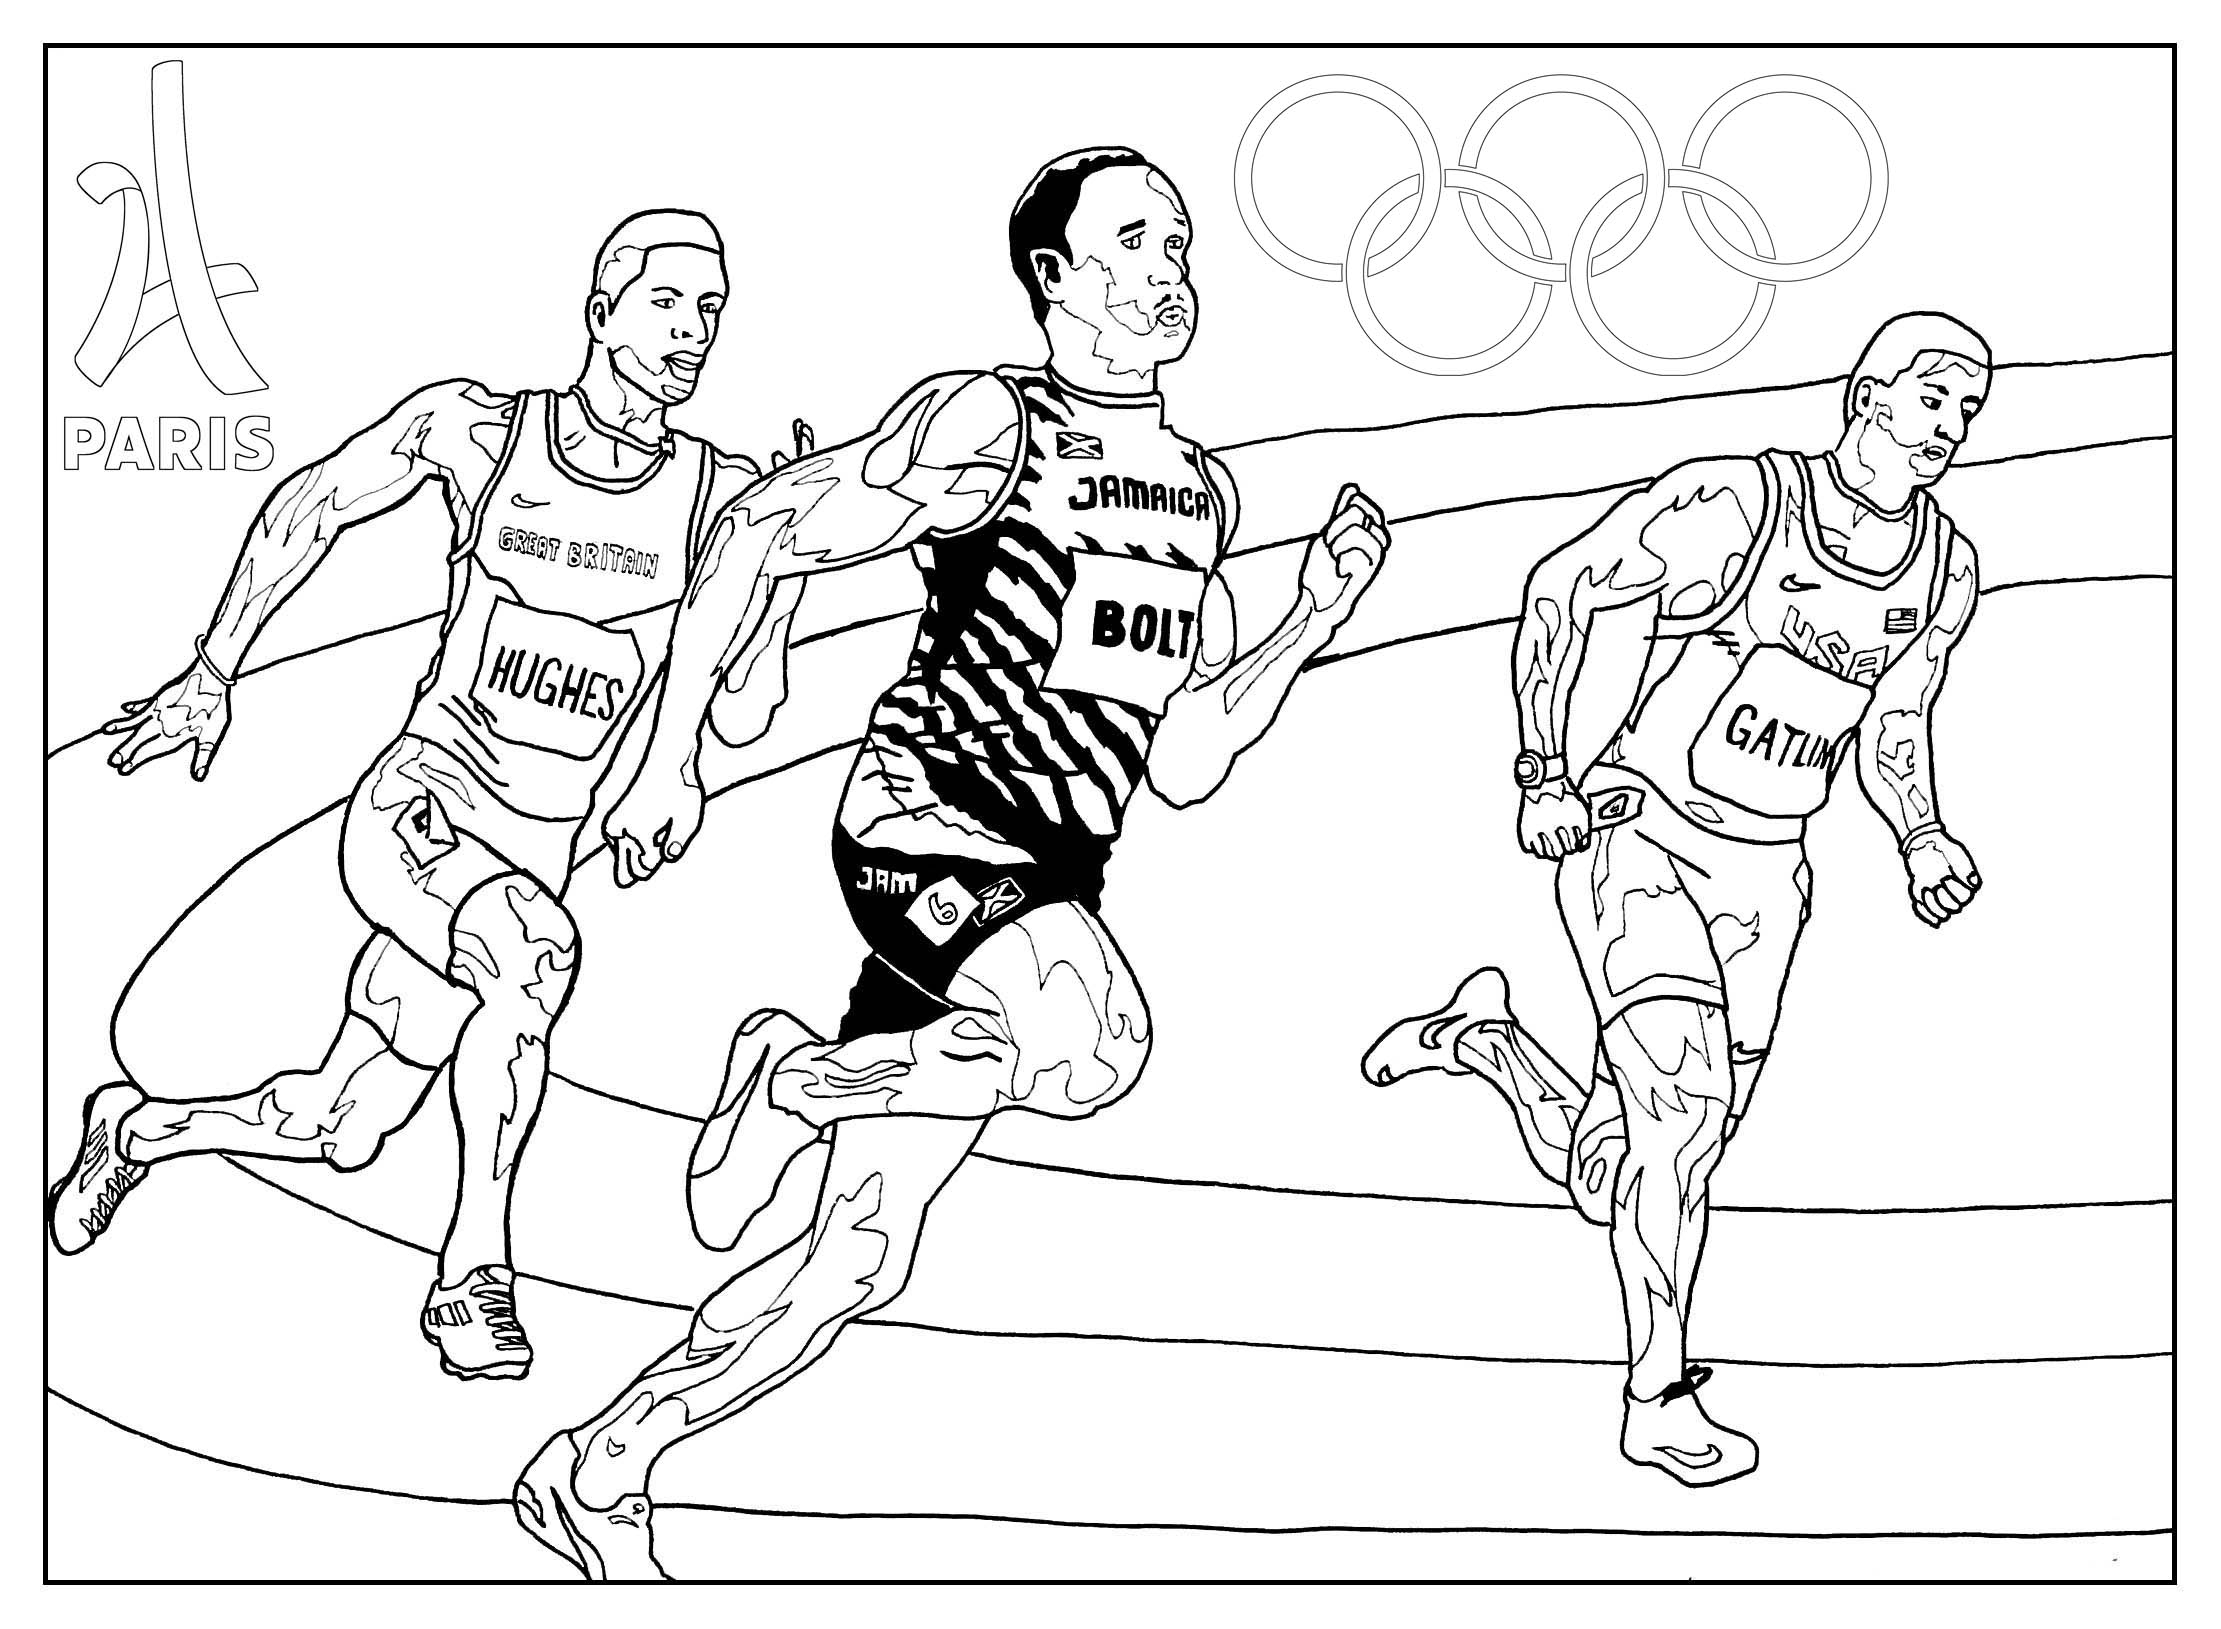 Games athletics Paris 2024 Olympic & Sport Adult Coloring Pages Collection Of Special Olympics Coloring Pages Inspirational Olympic torch Coloring Download